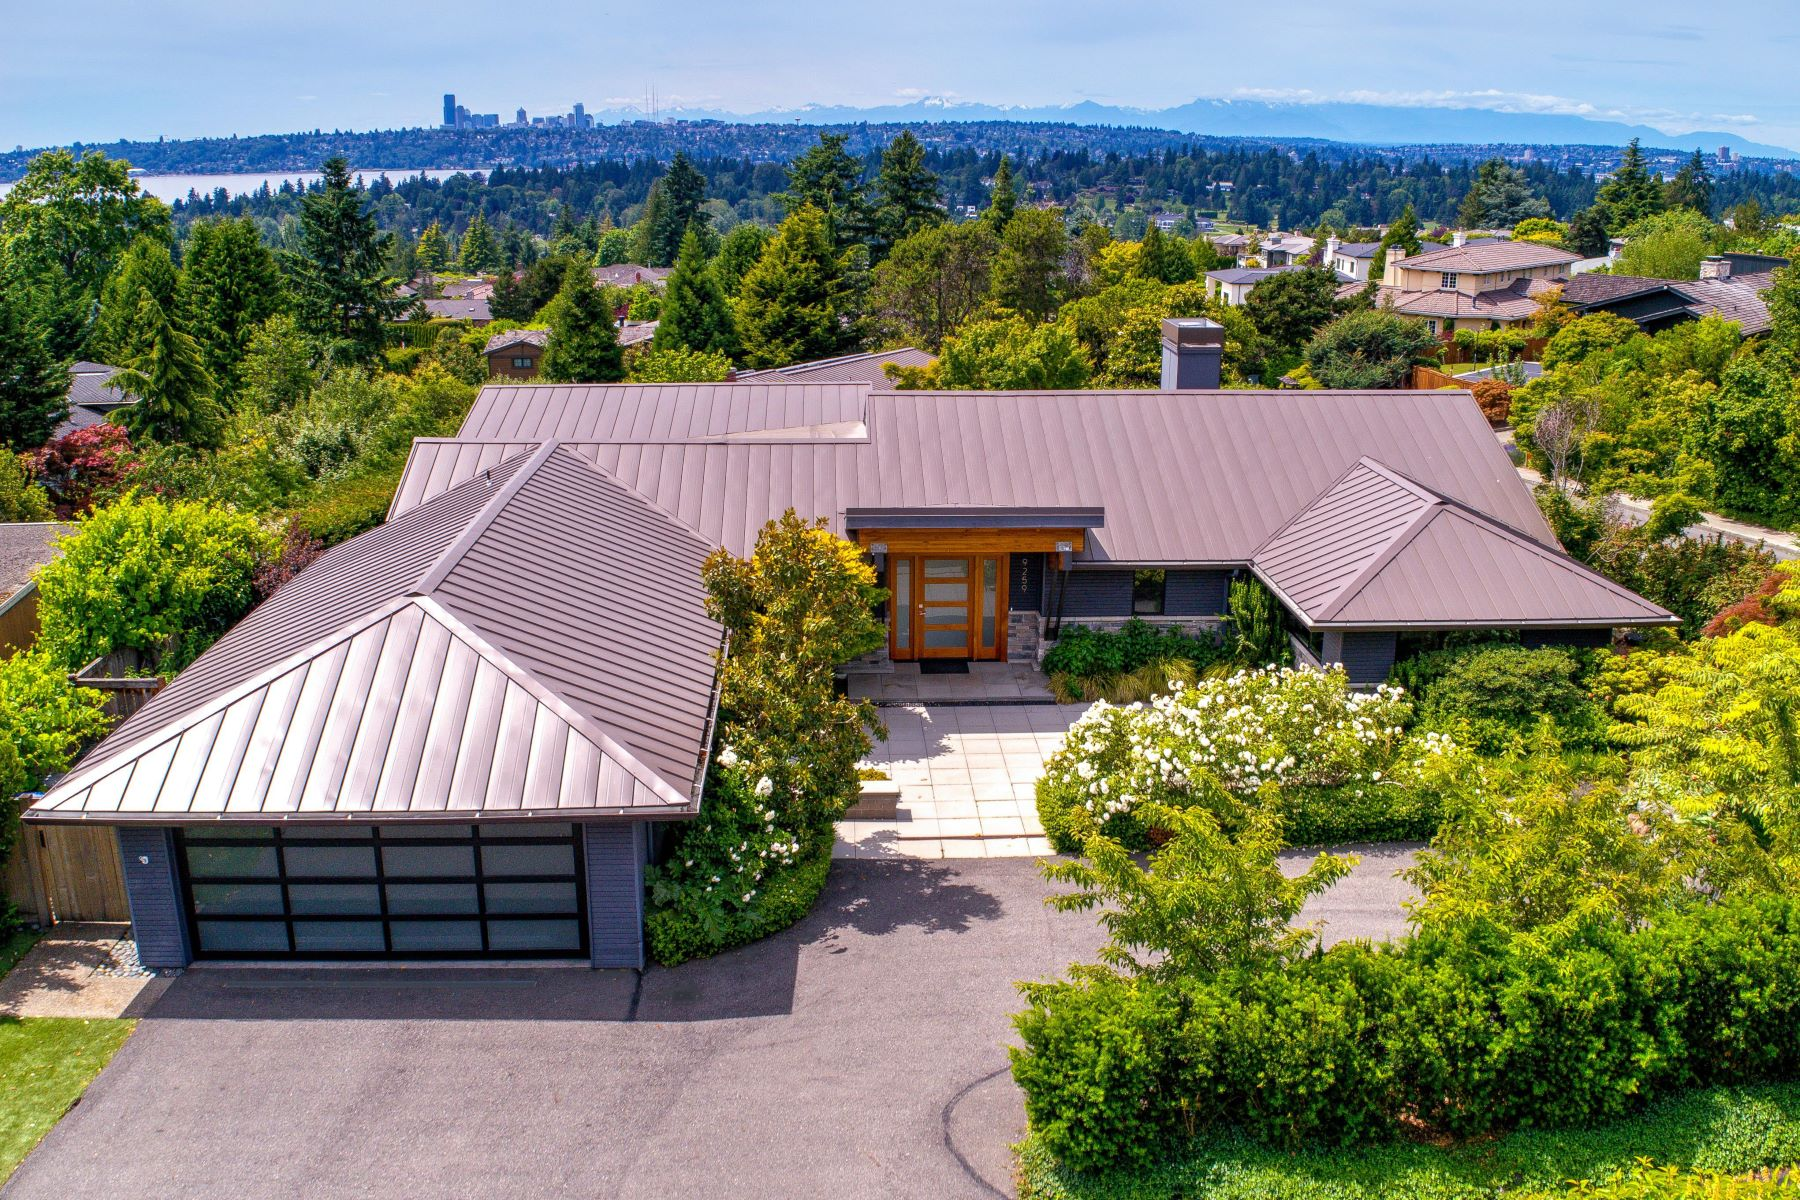 Single Family Homes for Sale at 9259 Northeast 14th Street, Clyde Hill, WA 98004 9259 NE 14th St Bellevue, Washington 98004 United States